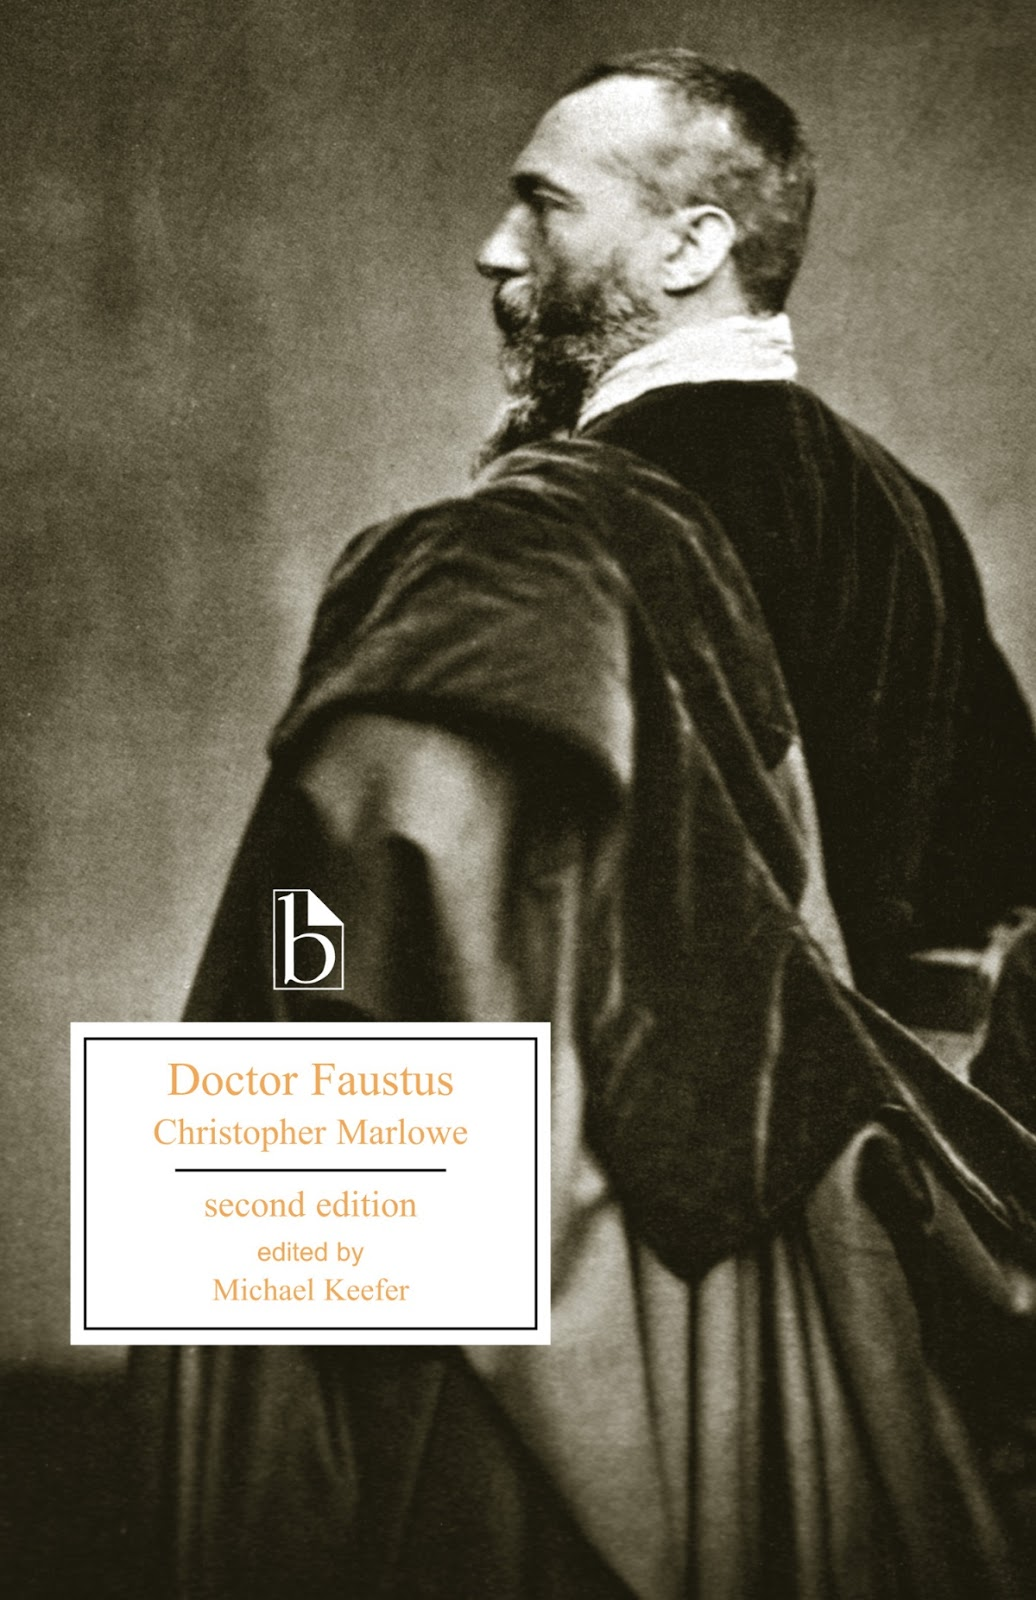 tragic fate of doctor faustus essay The damnation of faustus' fate concerning free will and personal responsibility marlowe manipulates this struggle between the aspirations of character of his time and the implications to christianity in relation to its doctrine of heaven and hell.